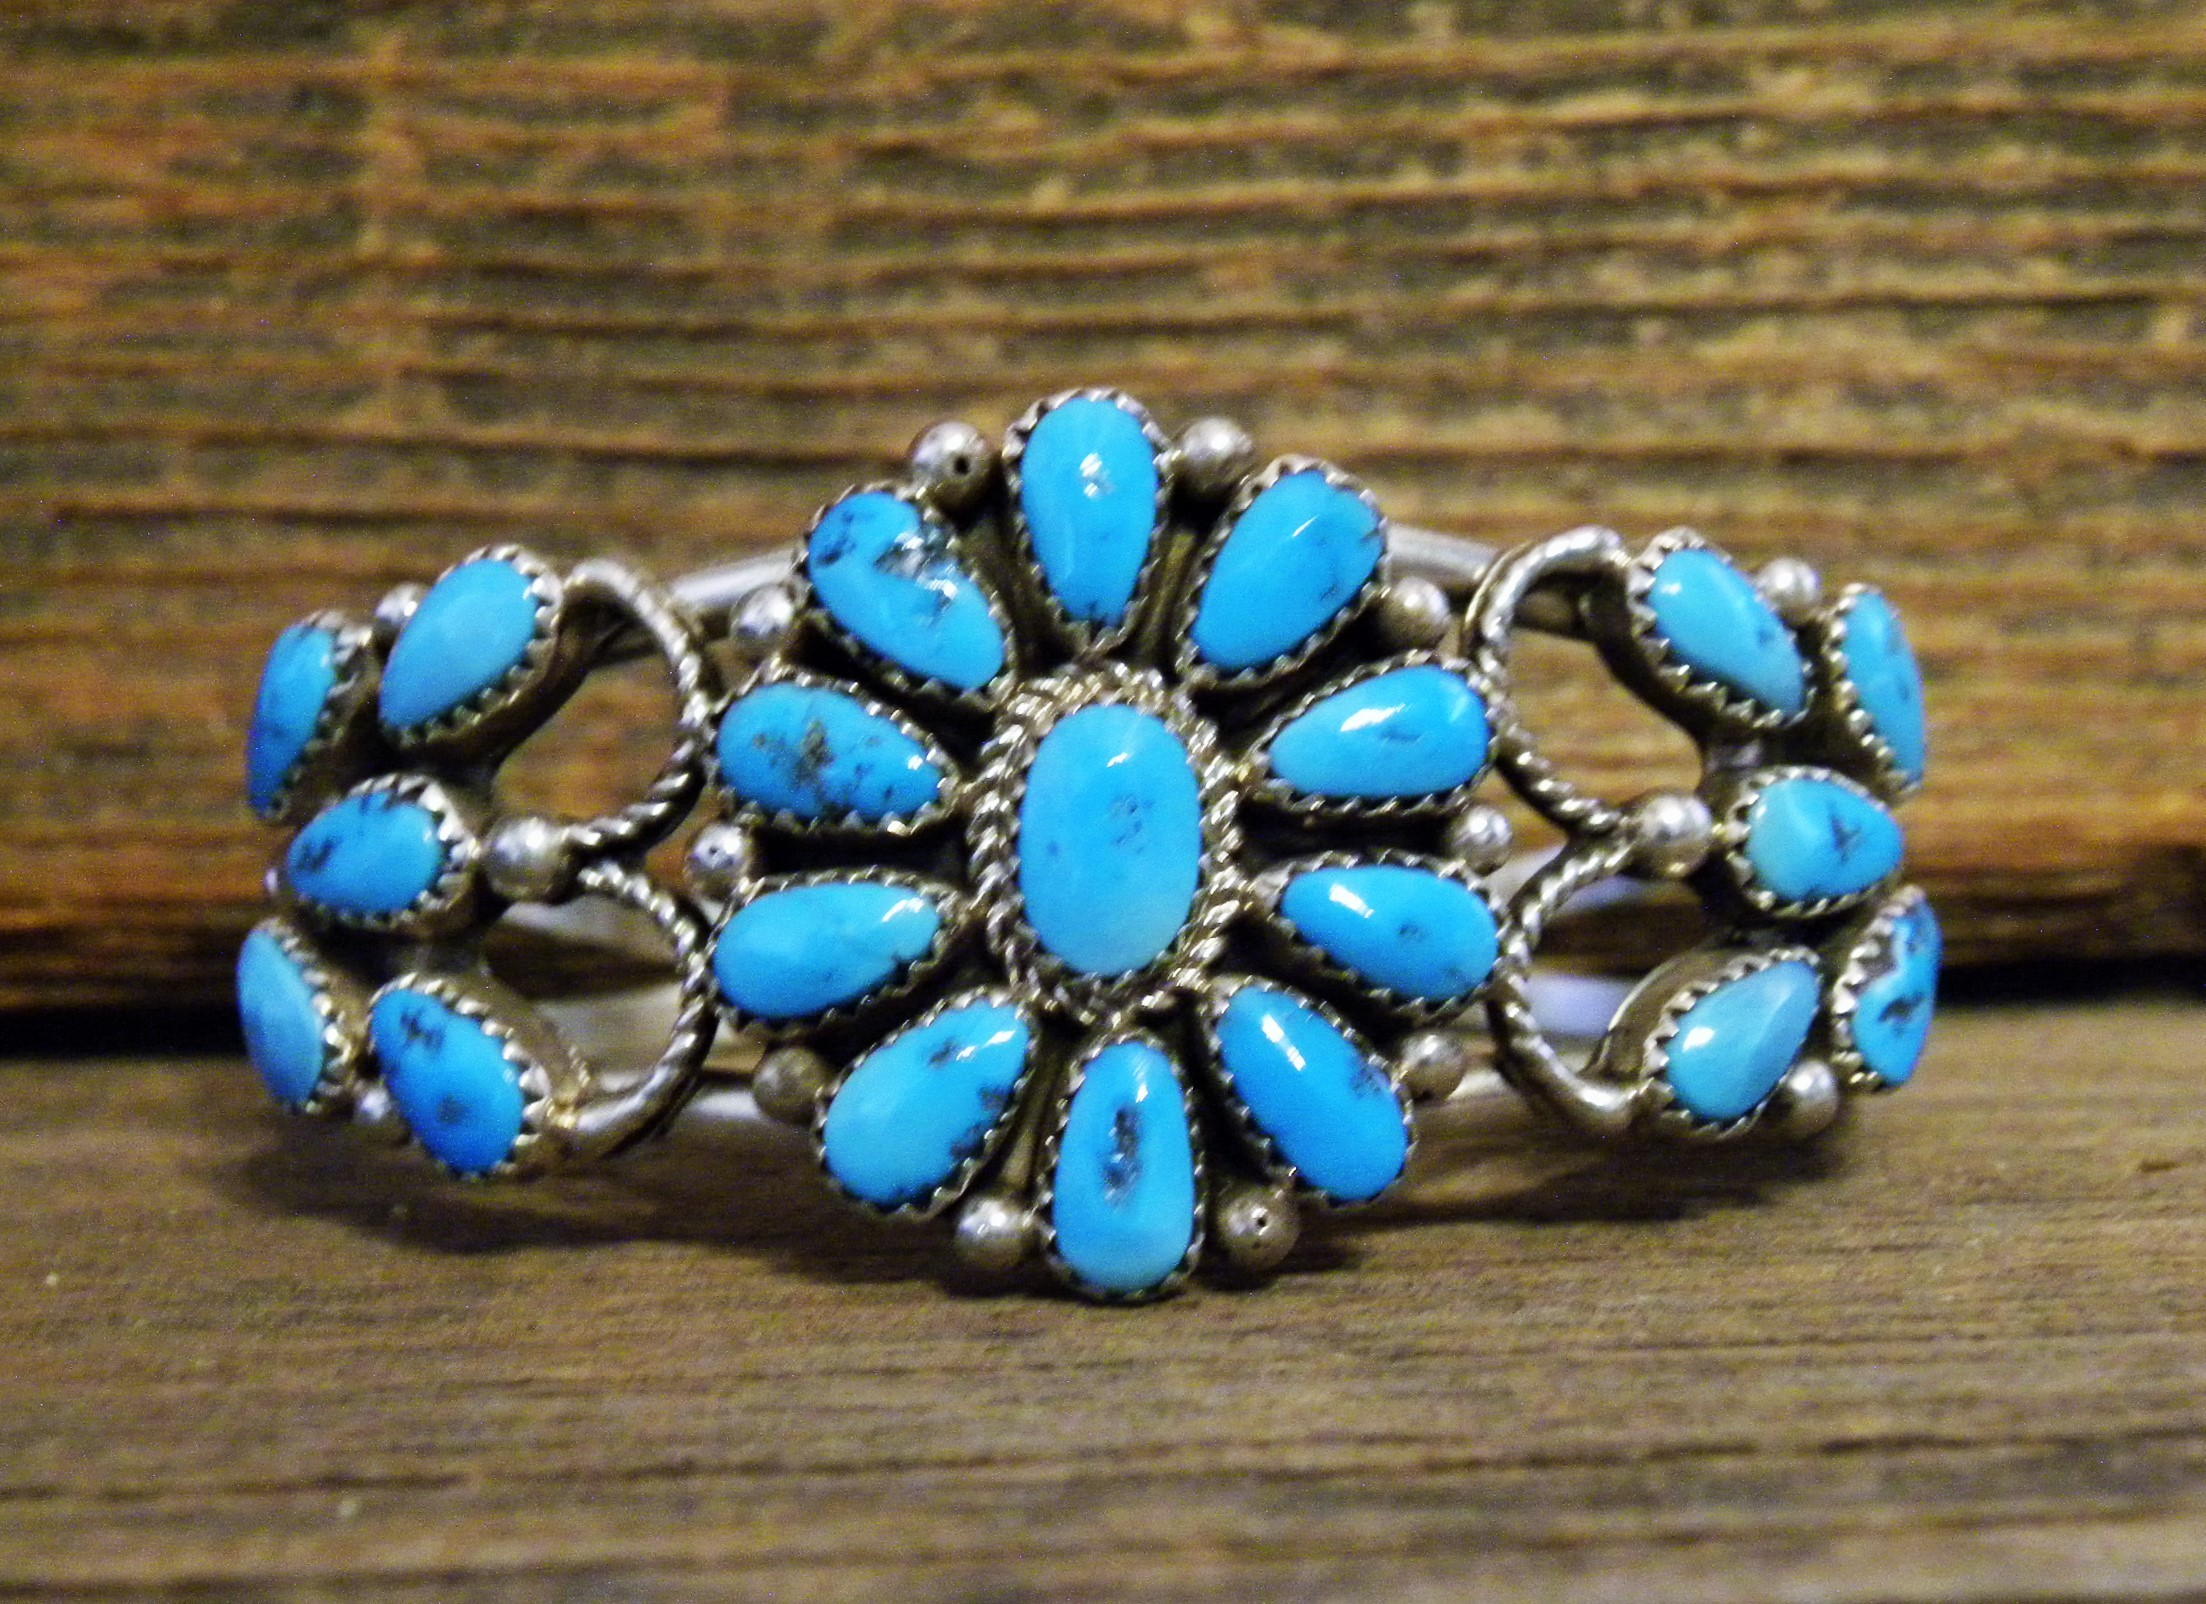 PB30 Pawn Navajo Handmade Sleeping Beauty Turquoise Bracelet with Butterfly Design